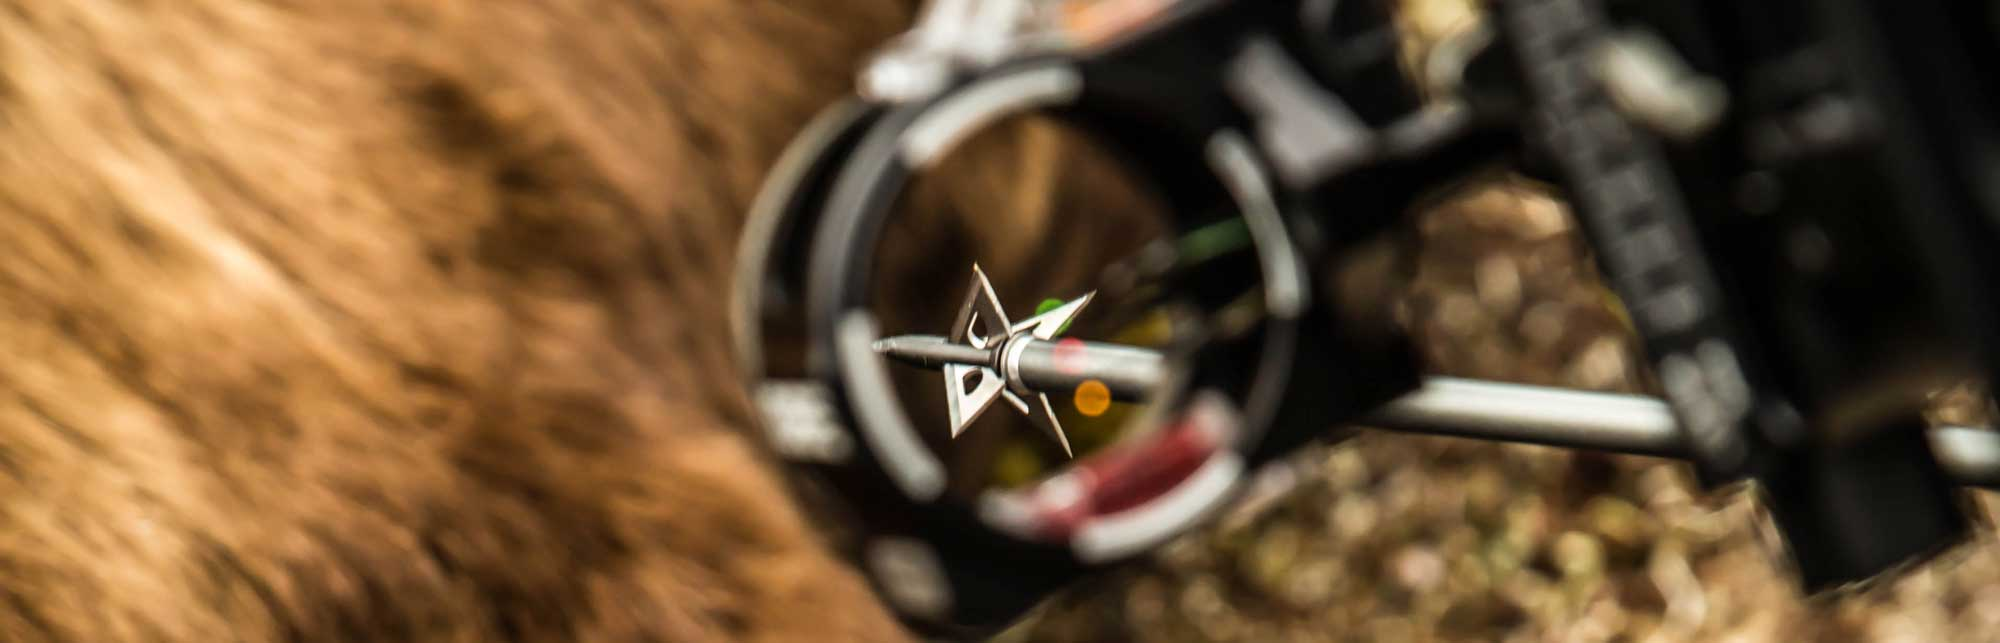 Slick Trick Broadheads - arrow with broadhead sighted through CBE sight